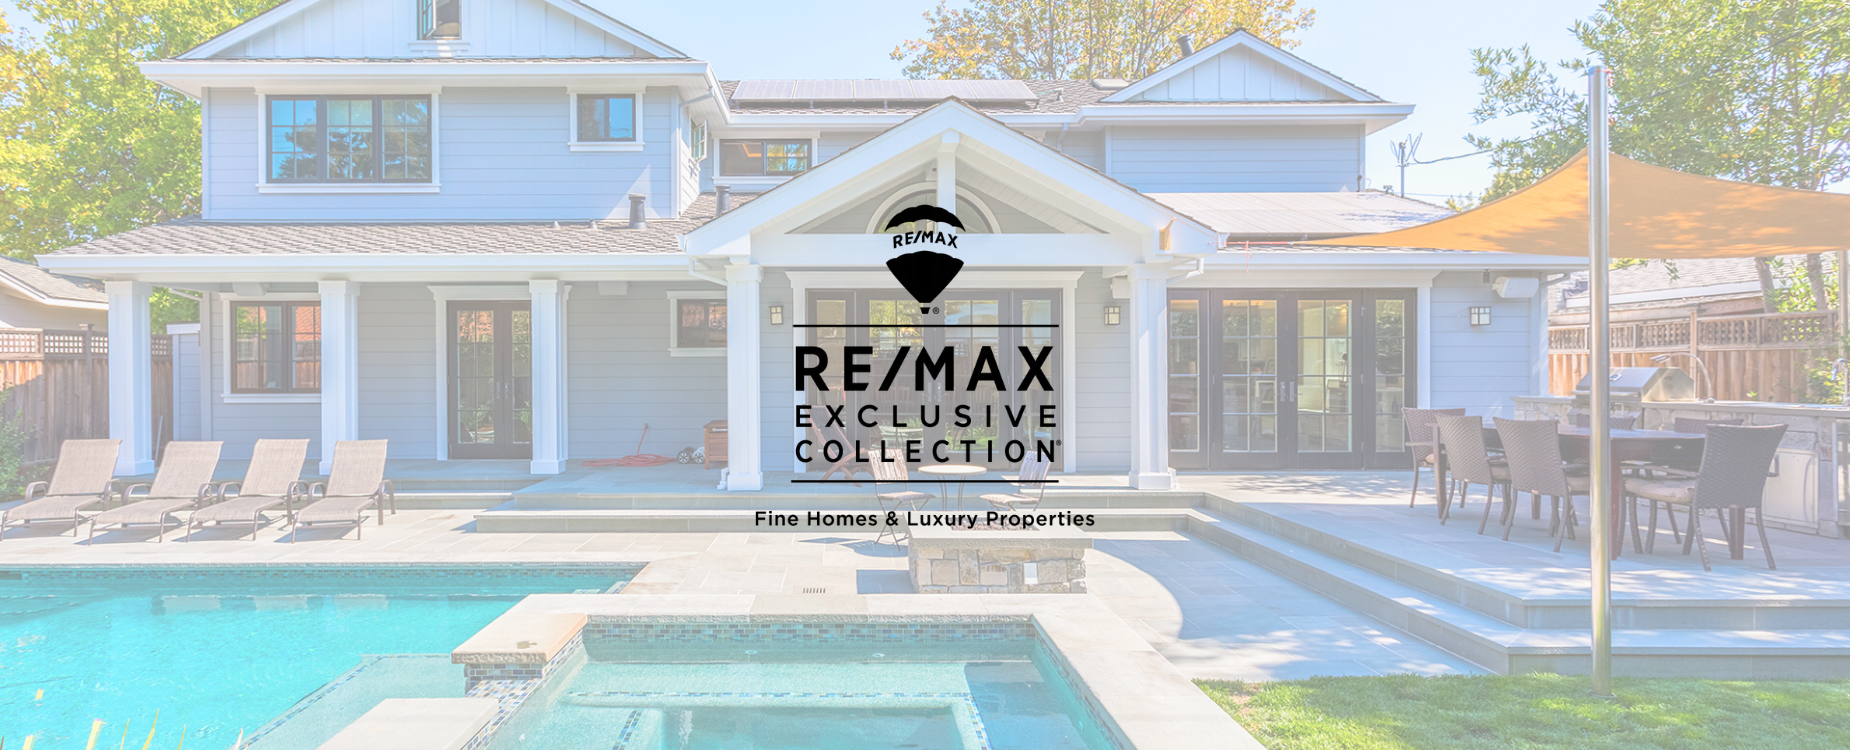 REMAX EXCLUSIVE COLLECTIONS (6)